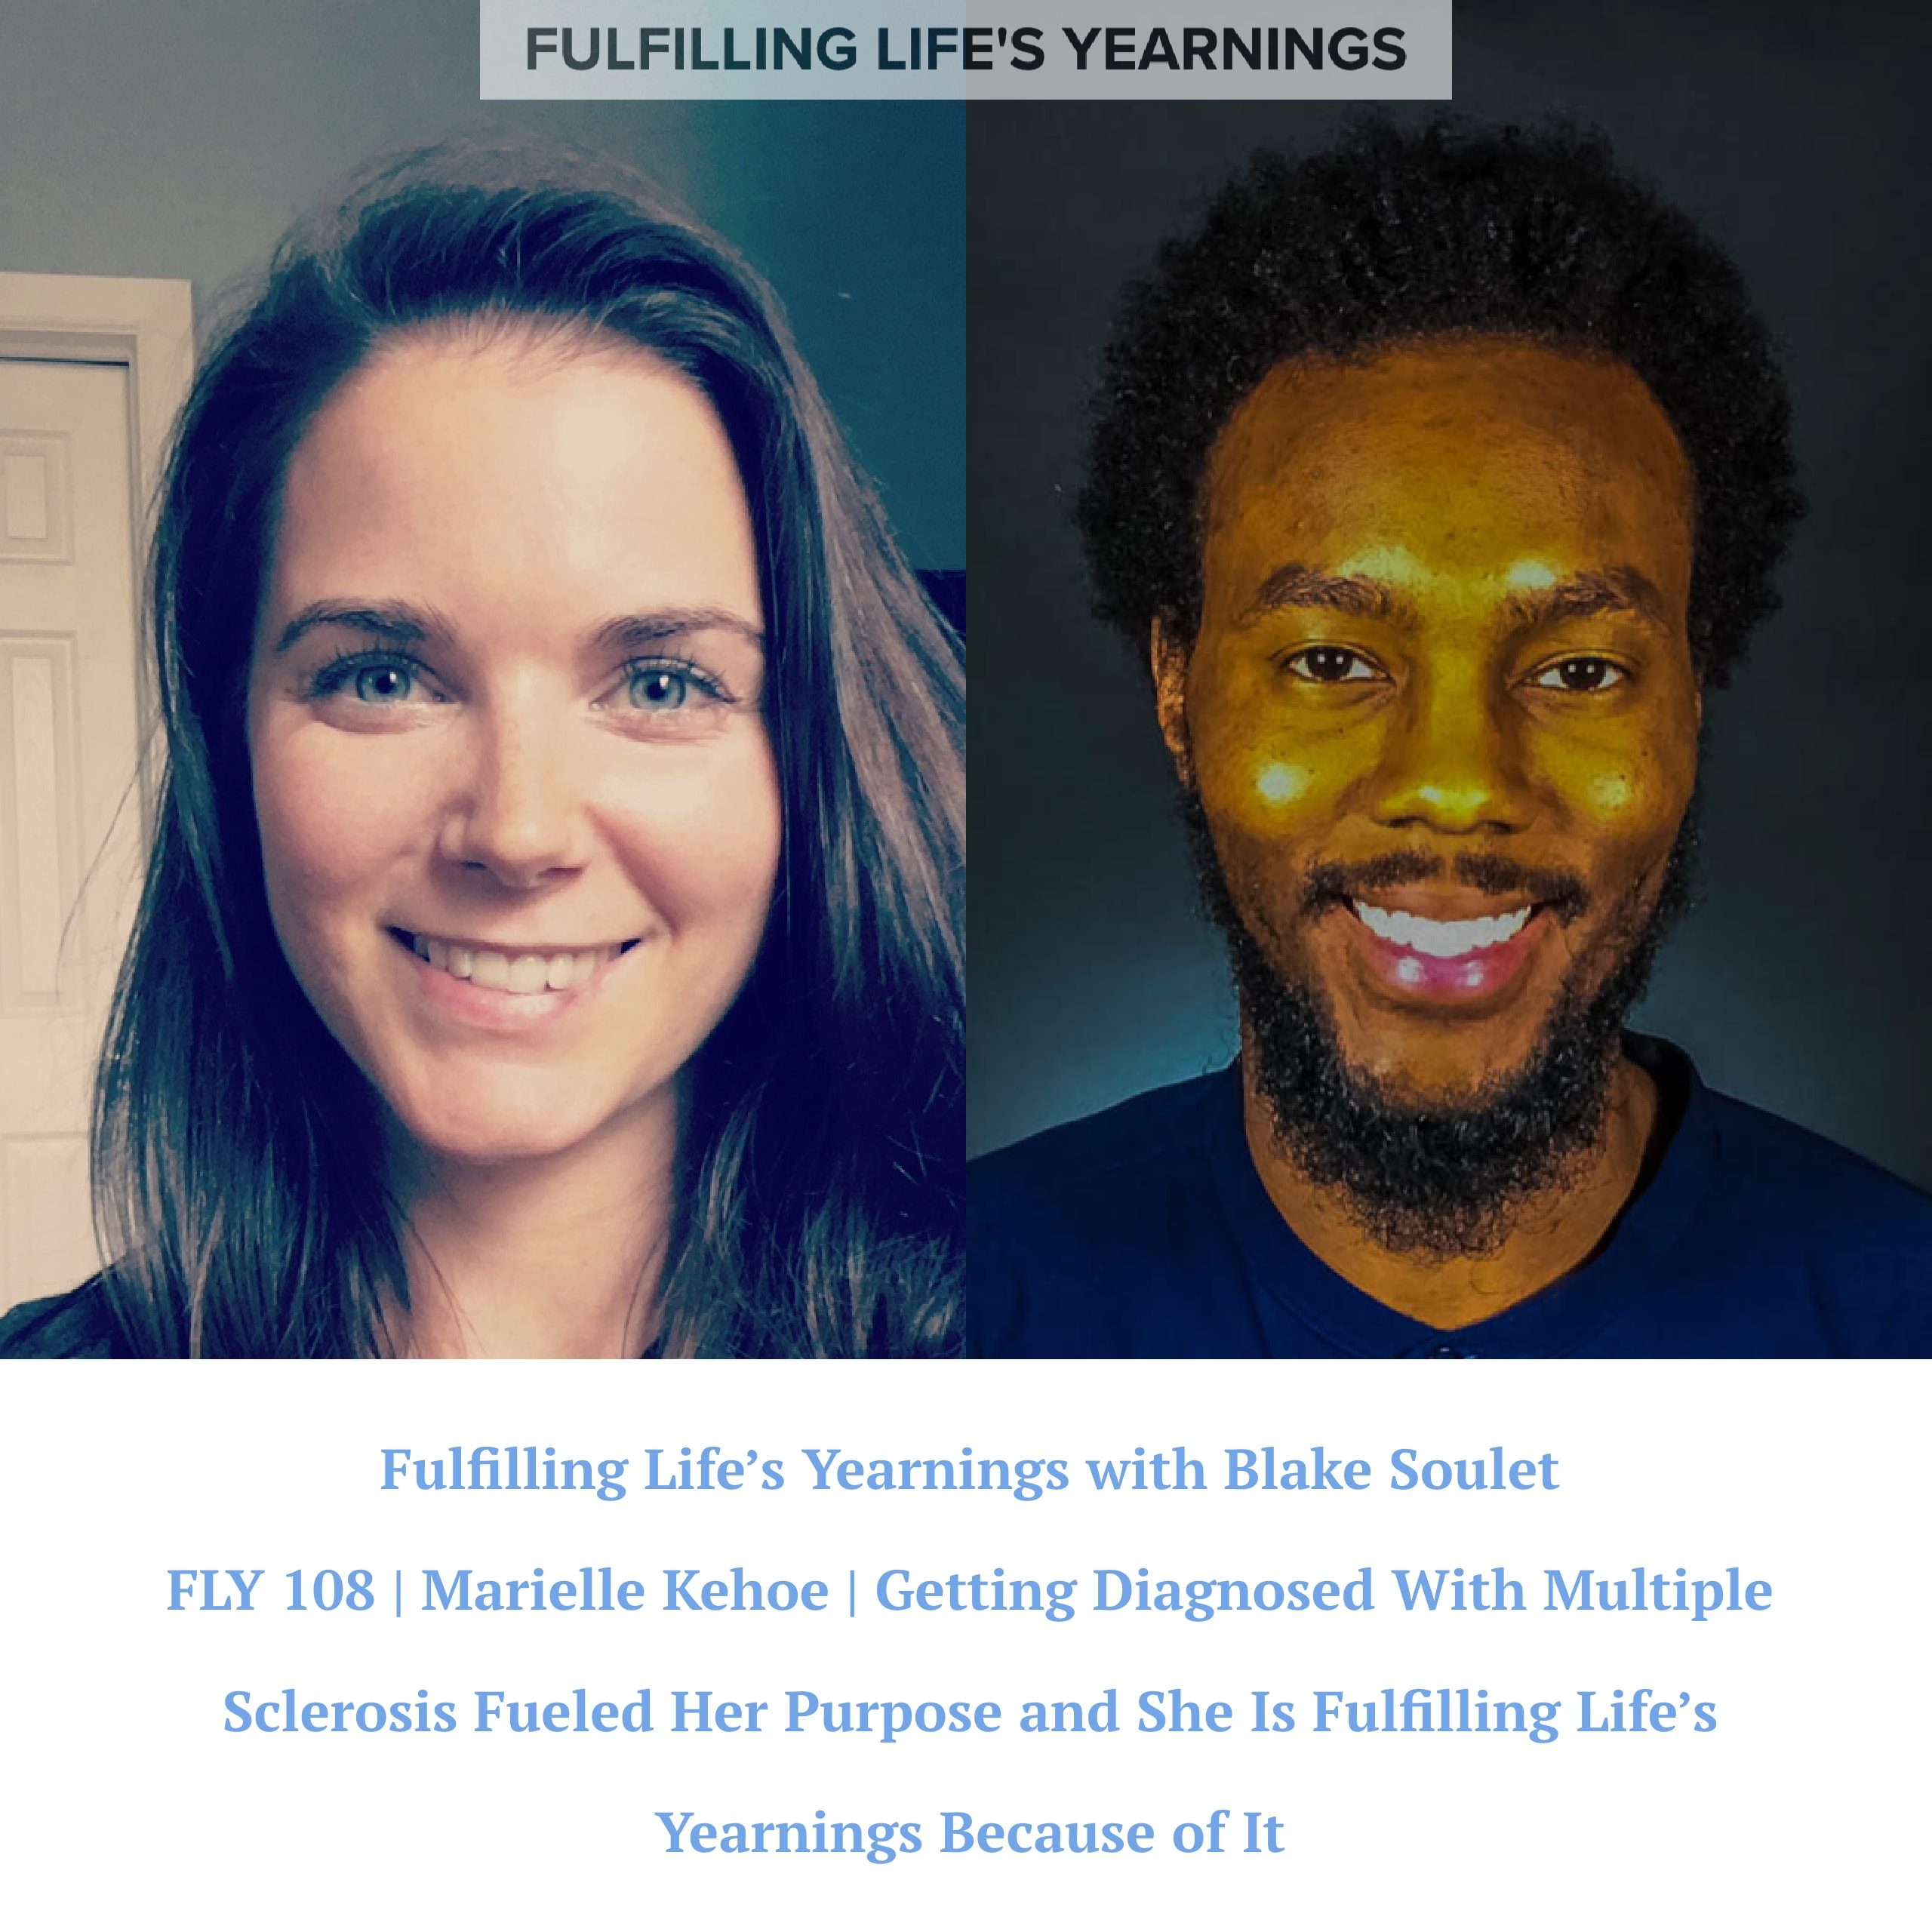 FLY 108 | Marielle Kehoe | Getting Diagnosed With Multiple Sclerosis Fueled Her Purpose and She Is Fulfilling Life's Yearnings Because of It